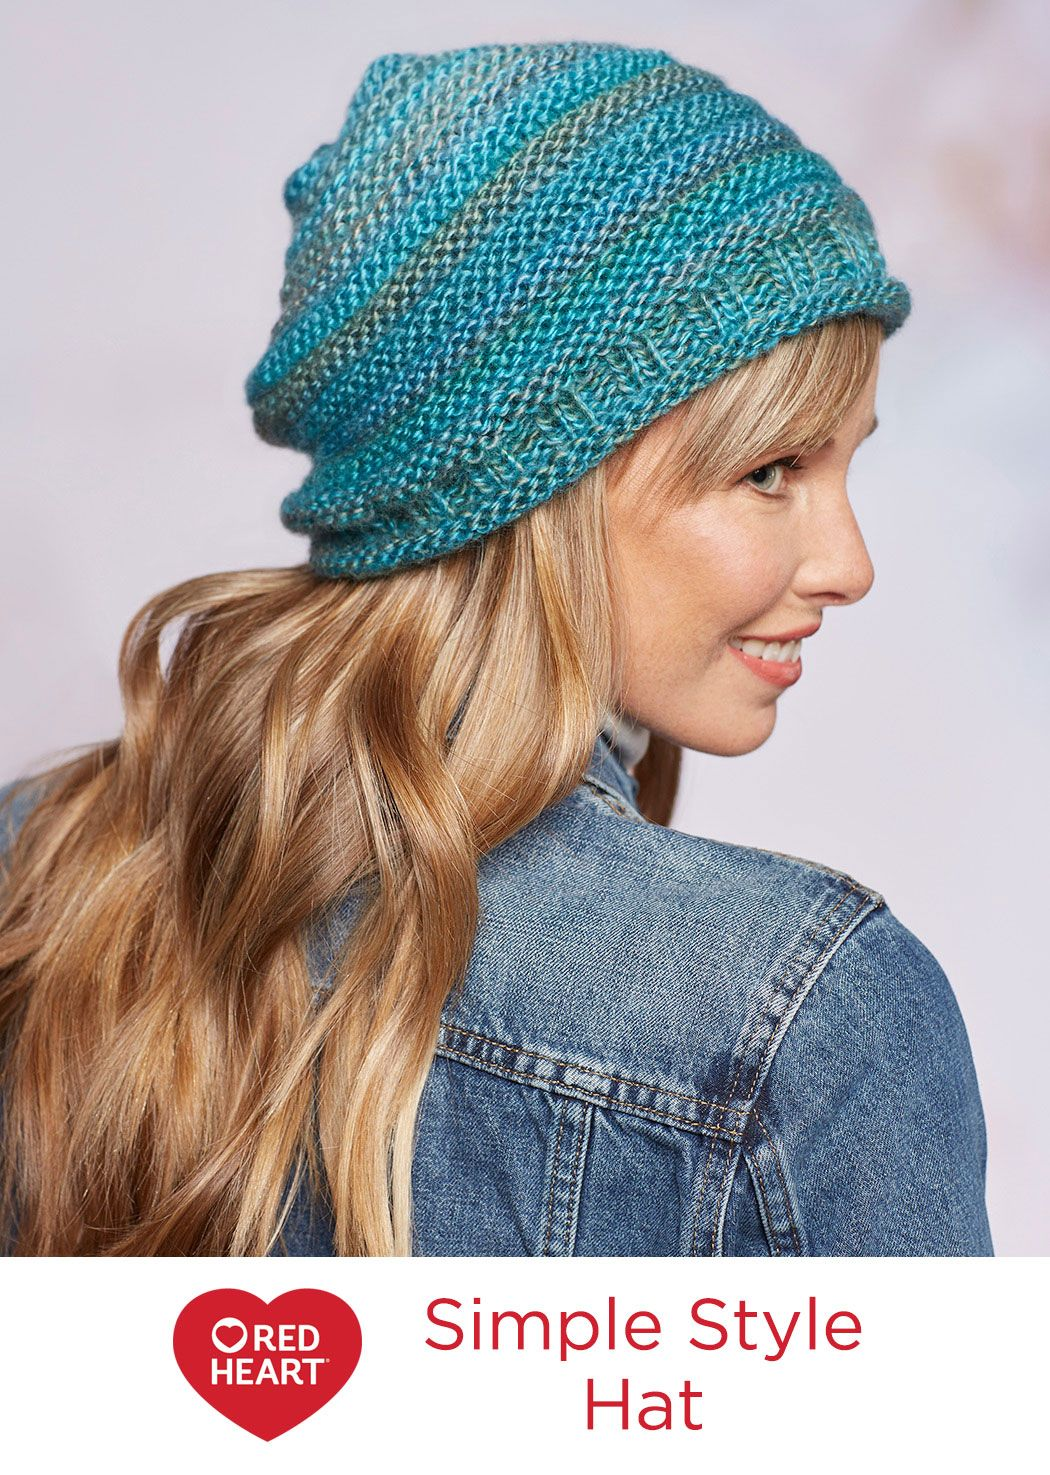 Simple style hat free knitting pattern in red heart yarns as with 50 free easy hat knitting patterns for winter to make you have come to the right place slouchy hats bulky yarn hats beanies berets and more bankloansurffo Images